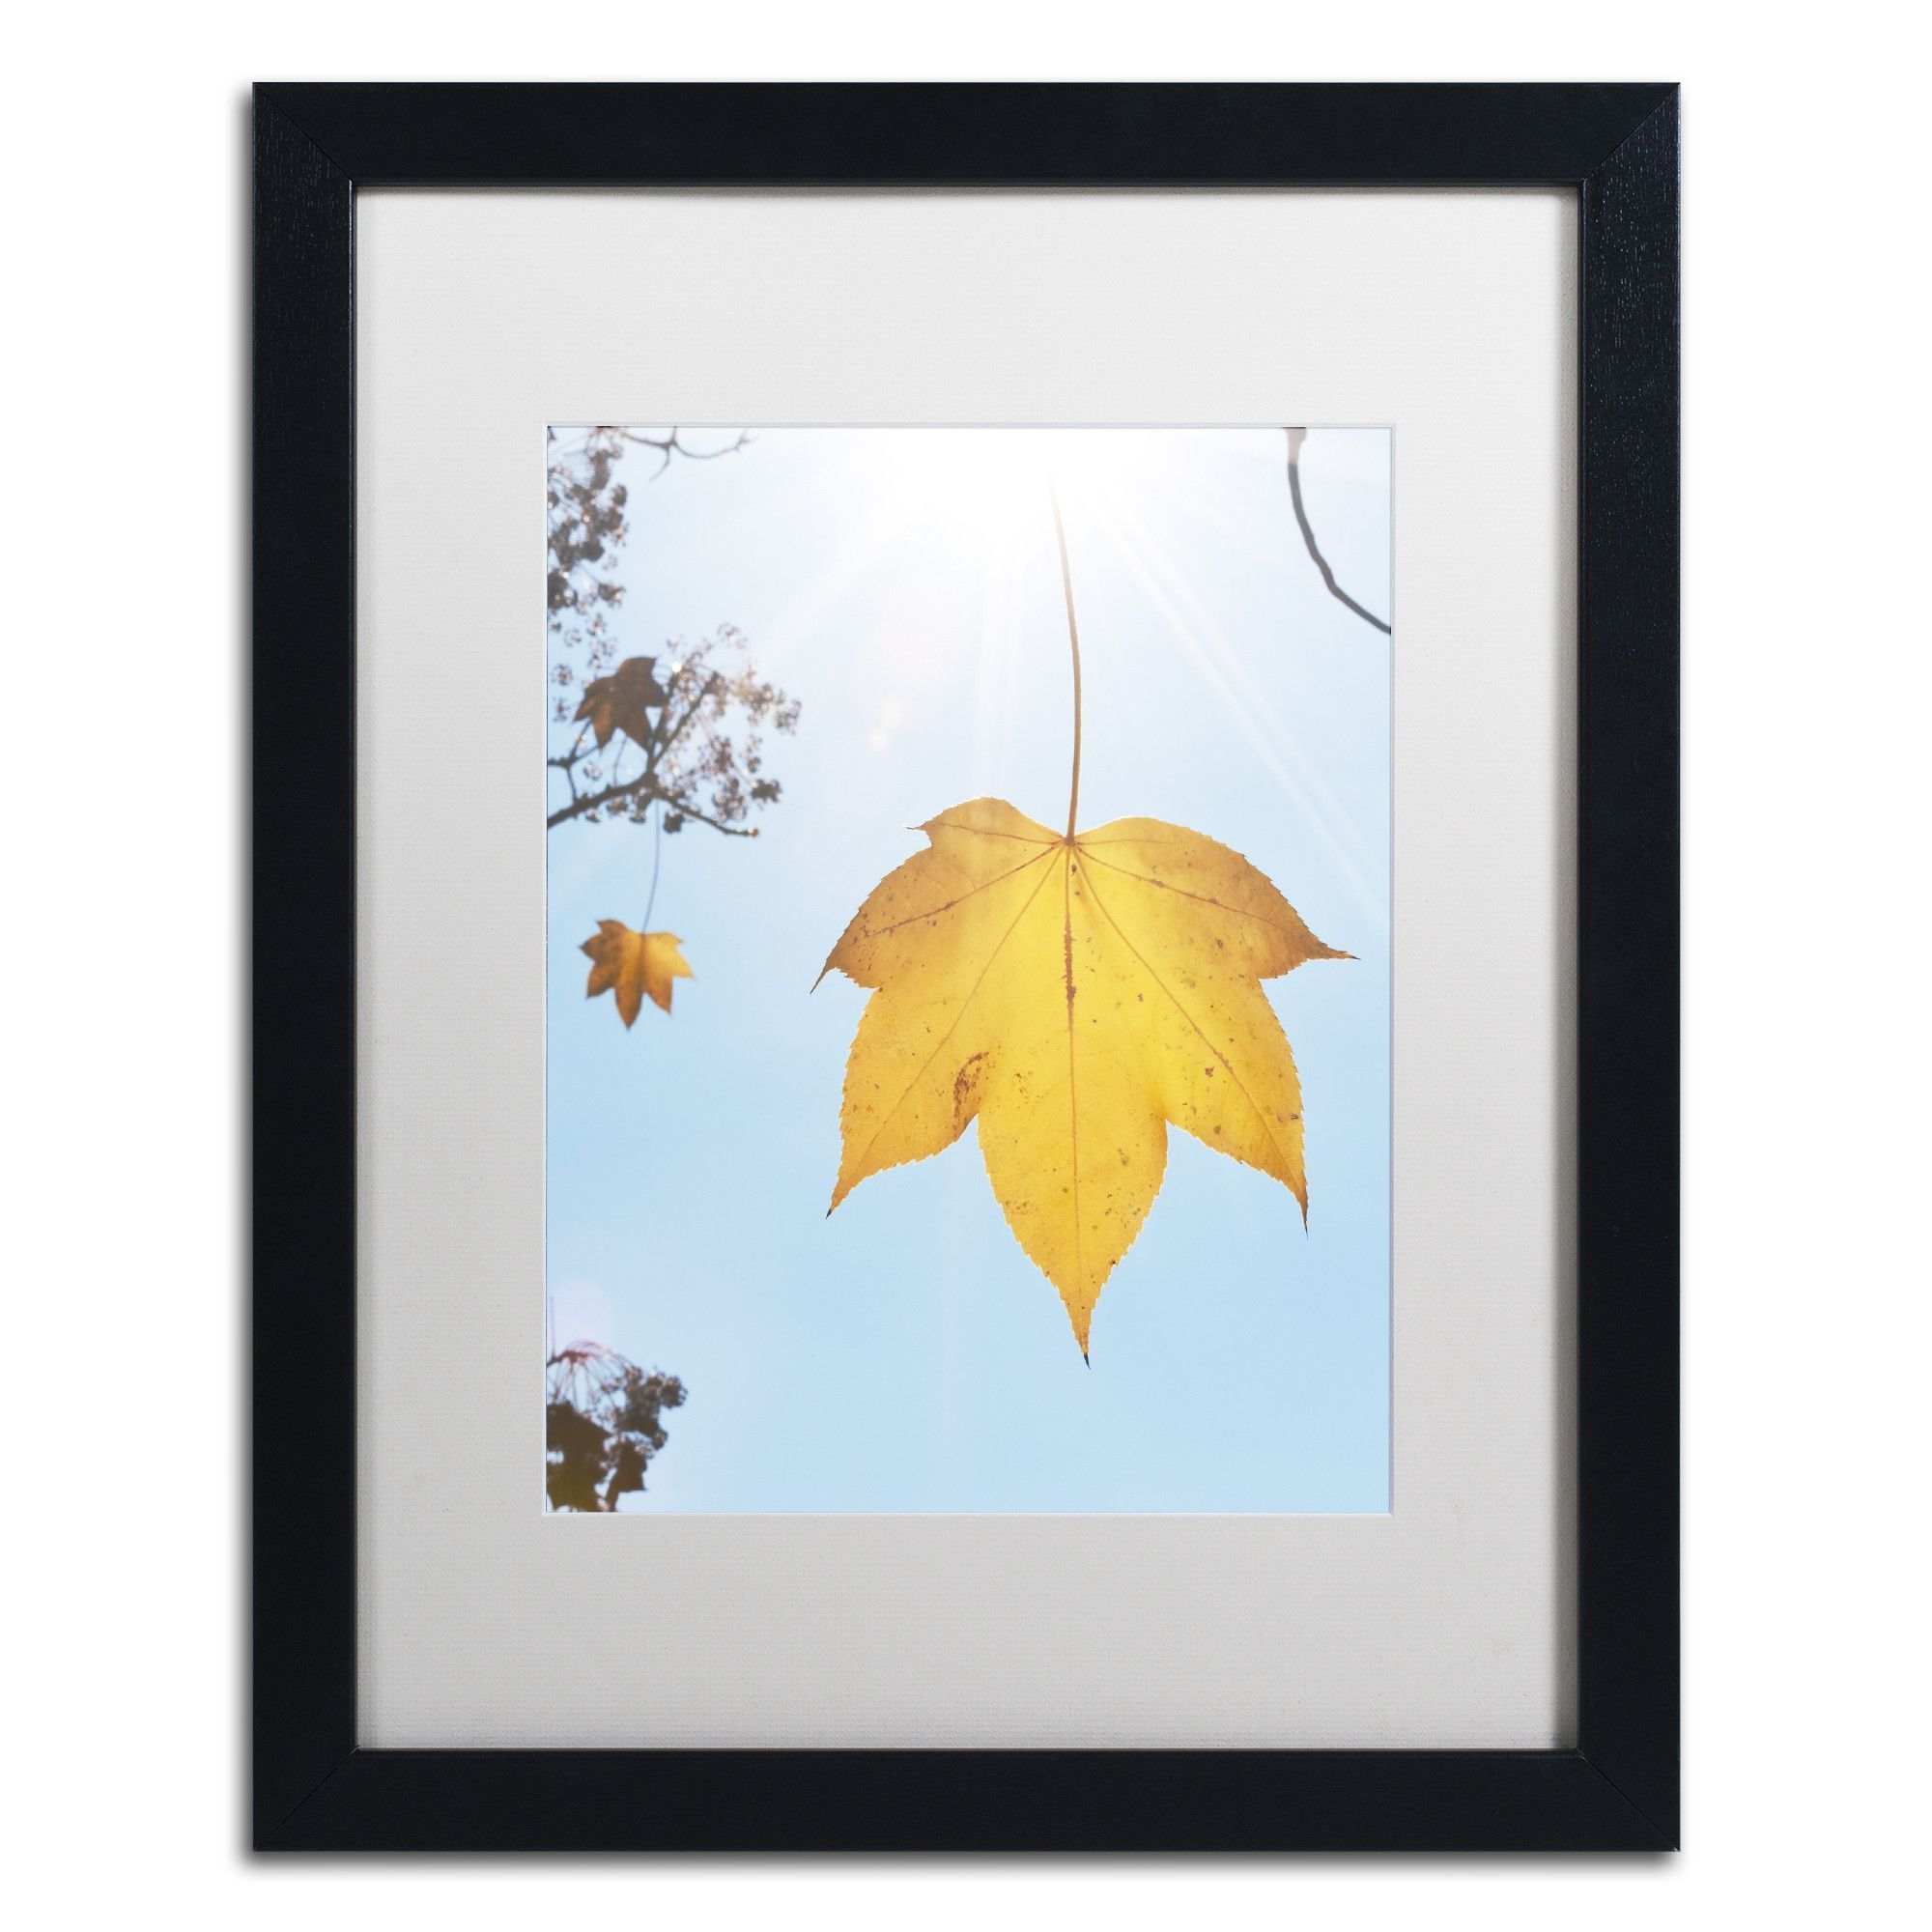 Autumn Leaf in the Sun by Kurt Shaffer Matted Framed Photographic Print